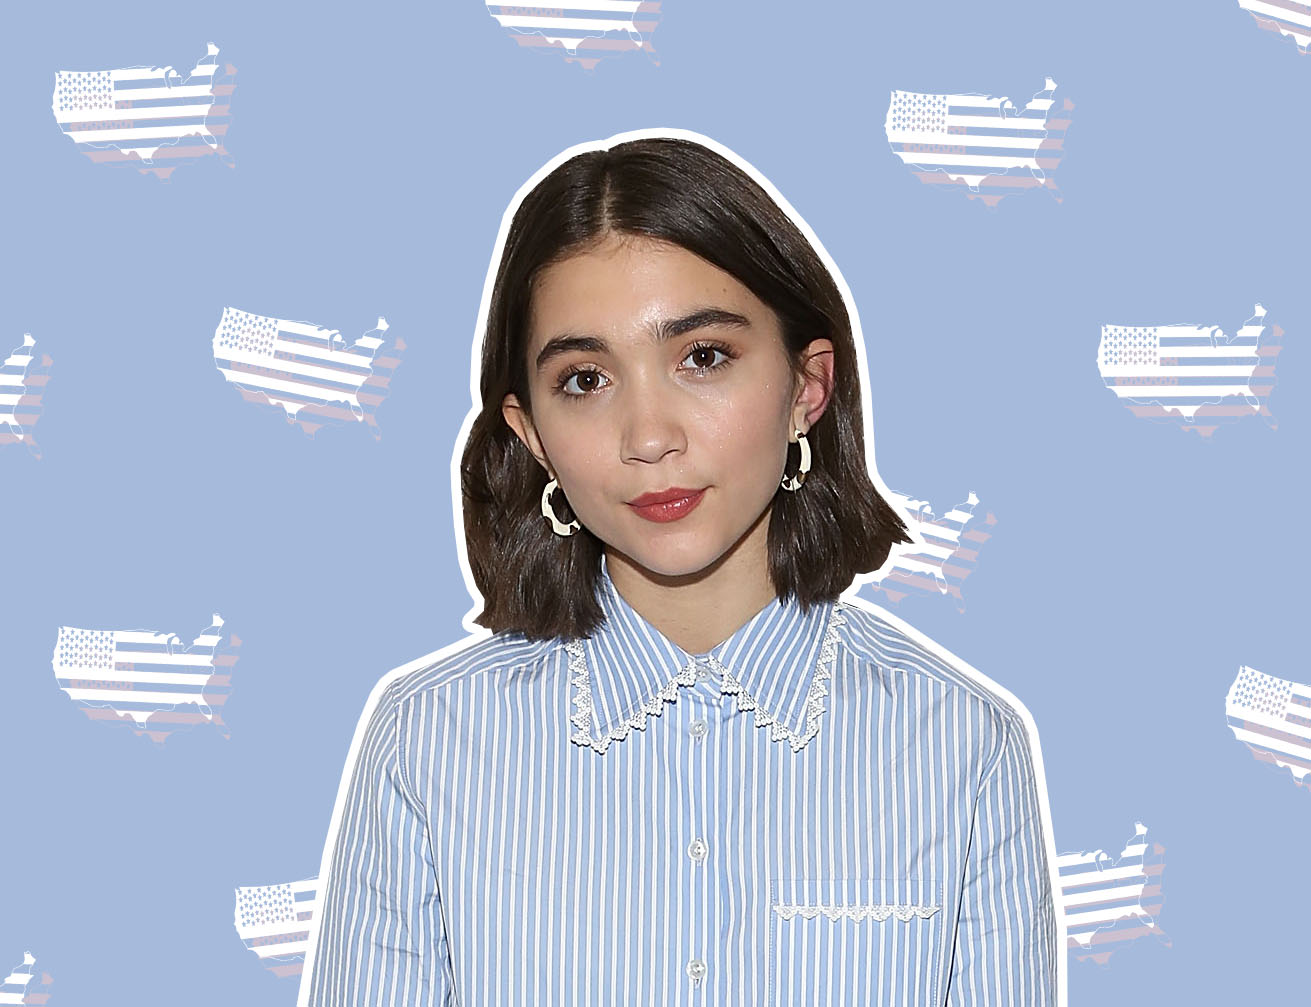 Rowan Blanchard's response to the Parkland shooting will make you think